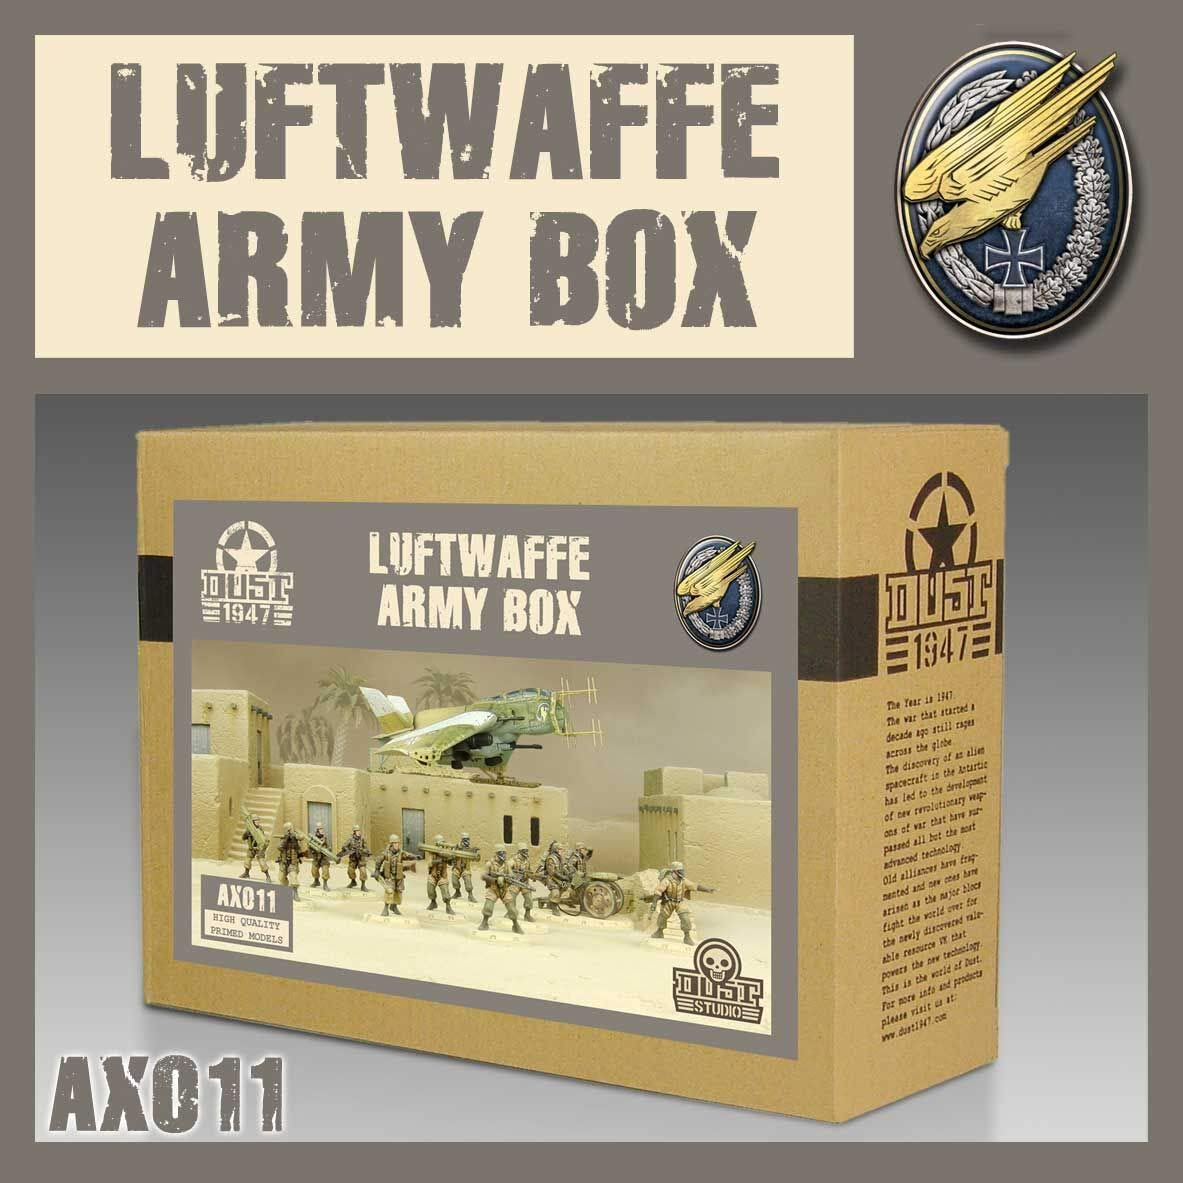 DUST 1947 - Axis Luftwaffe Army Box